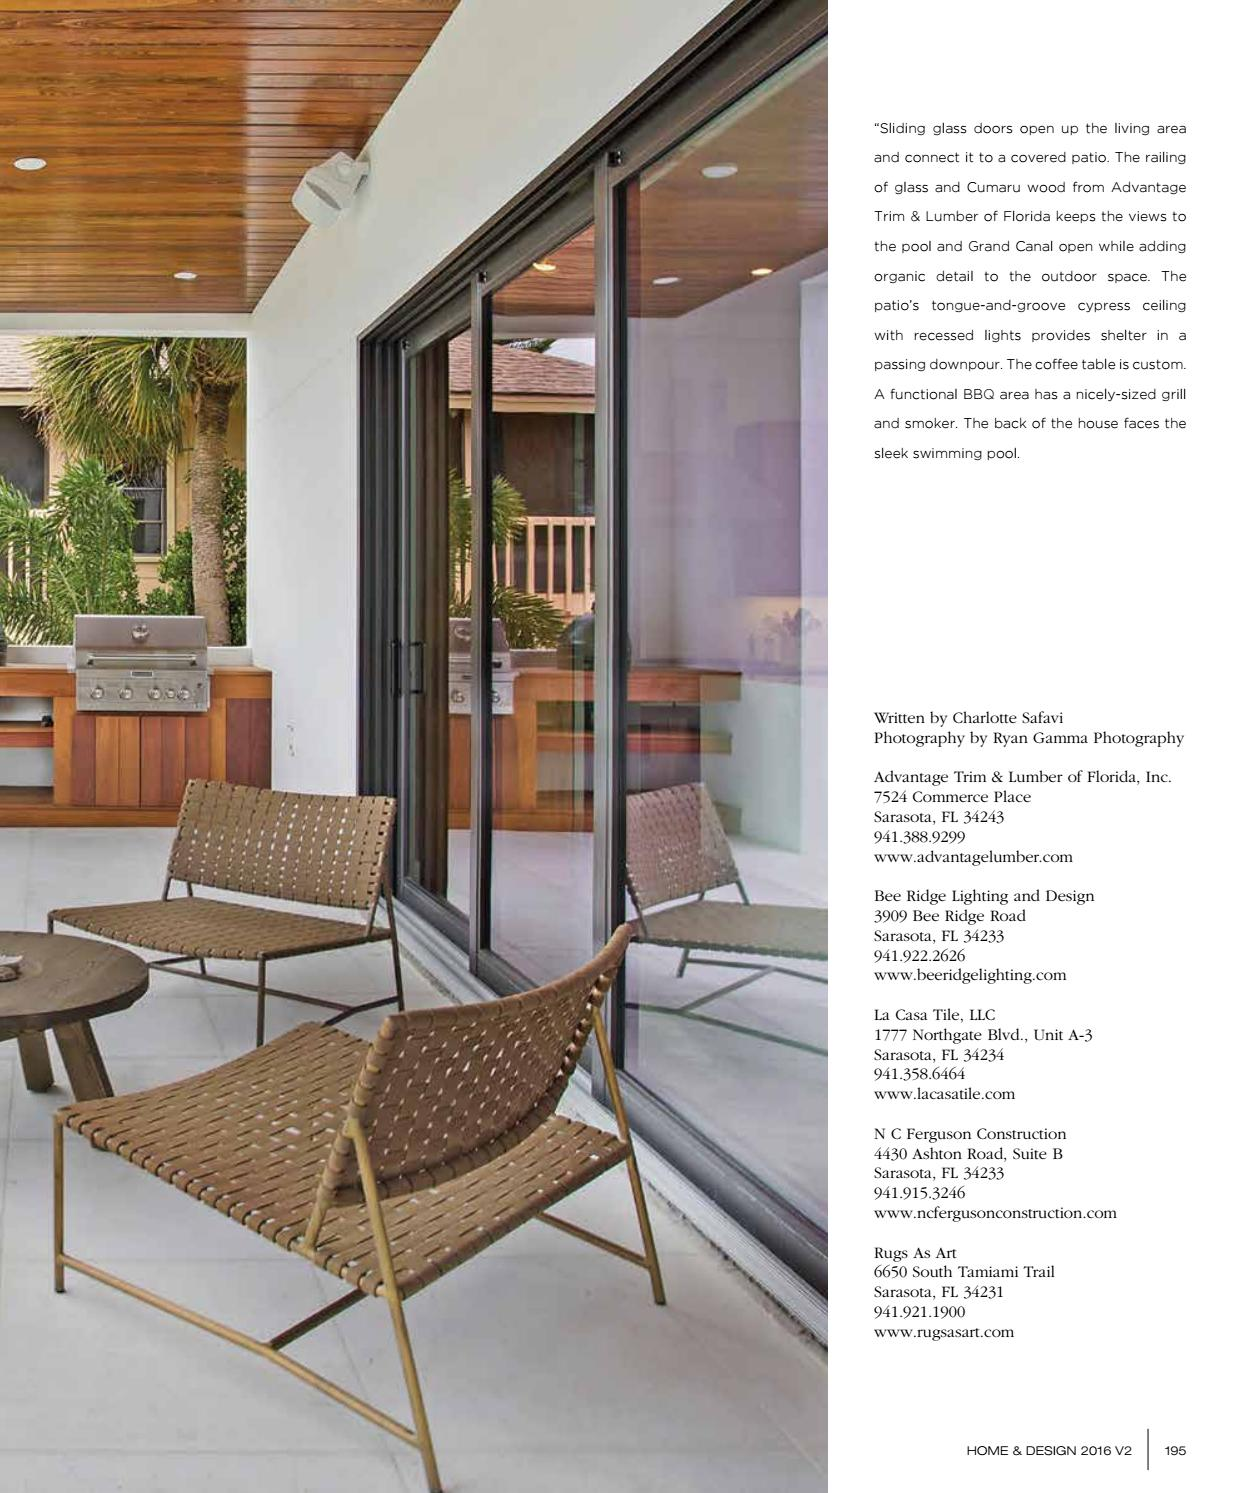 Home Design Magazine 2016 Suncoast Florida Edition By Jennifer